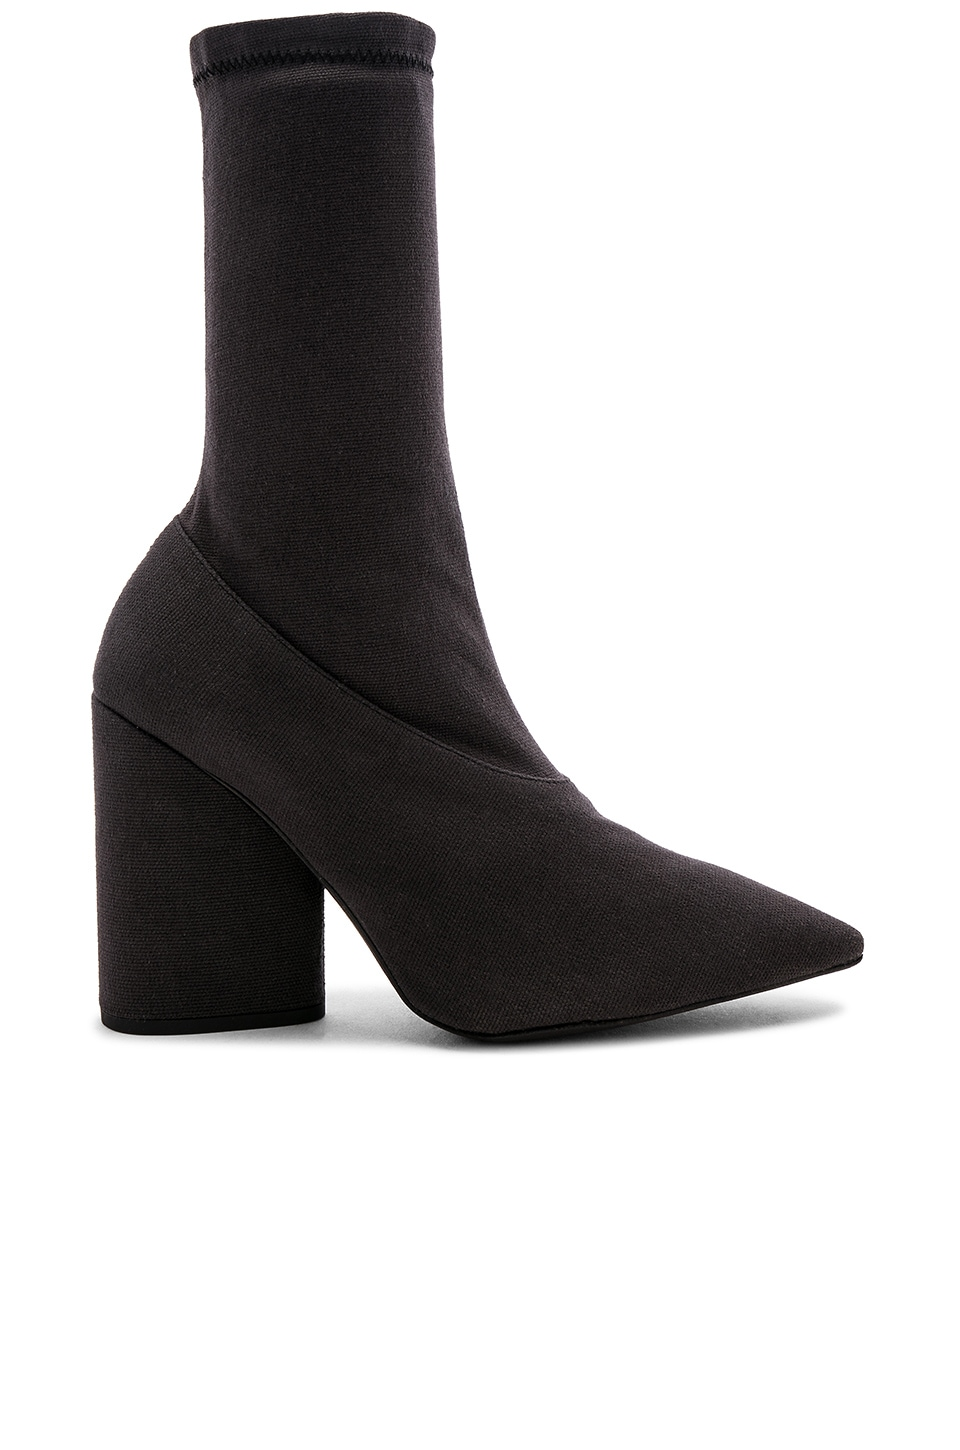 SEASON 7 Stretch Ankle Boot 100MM